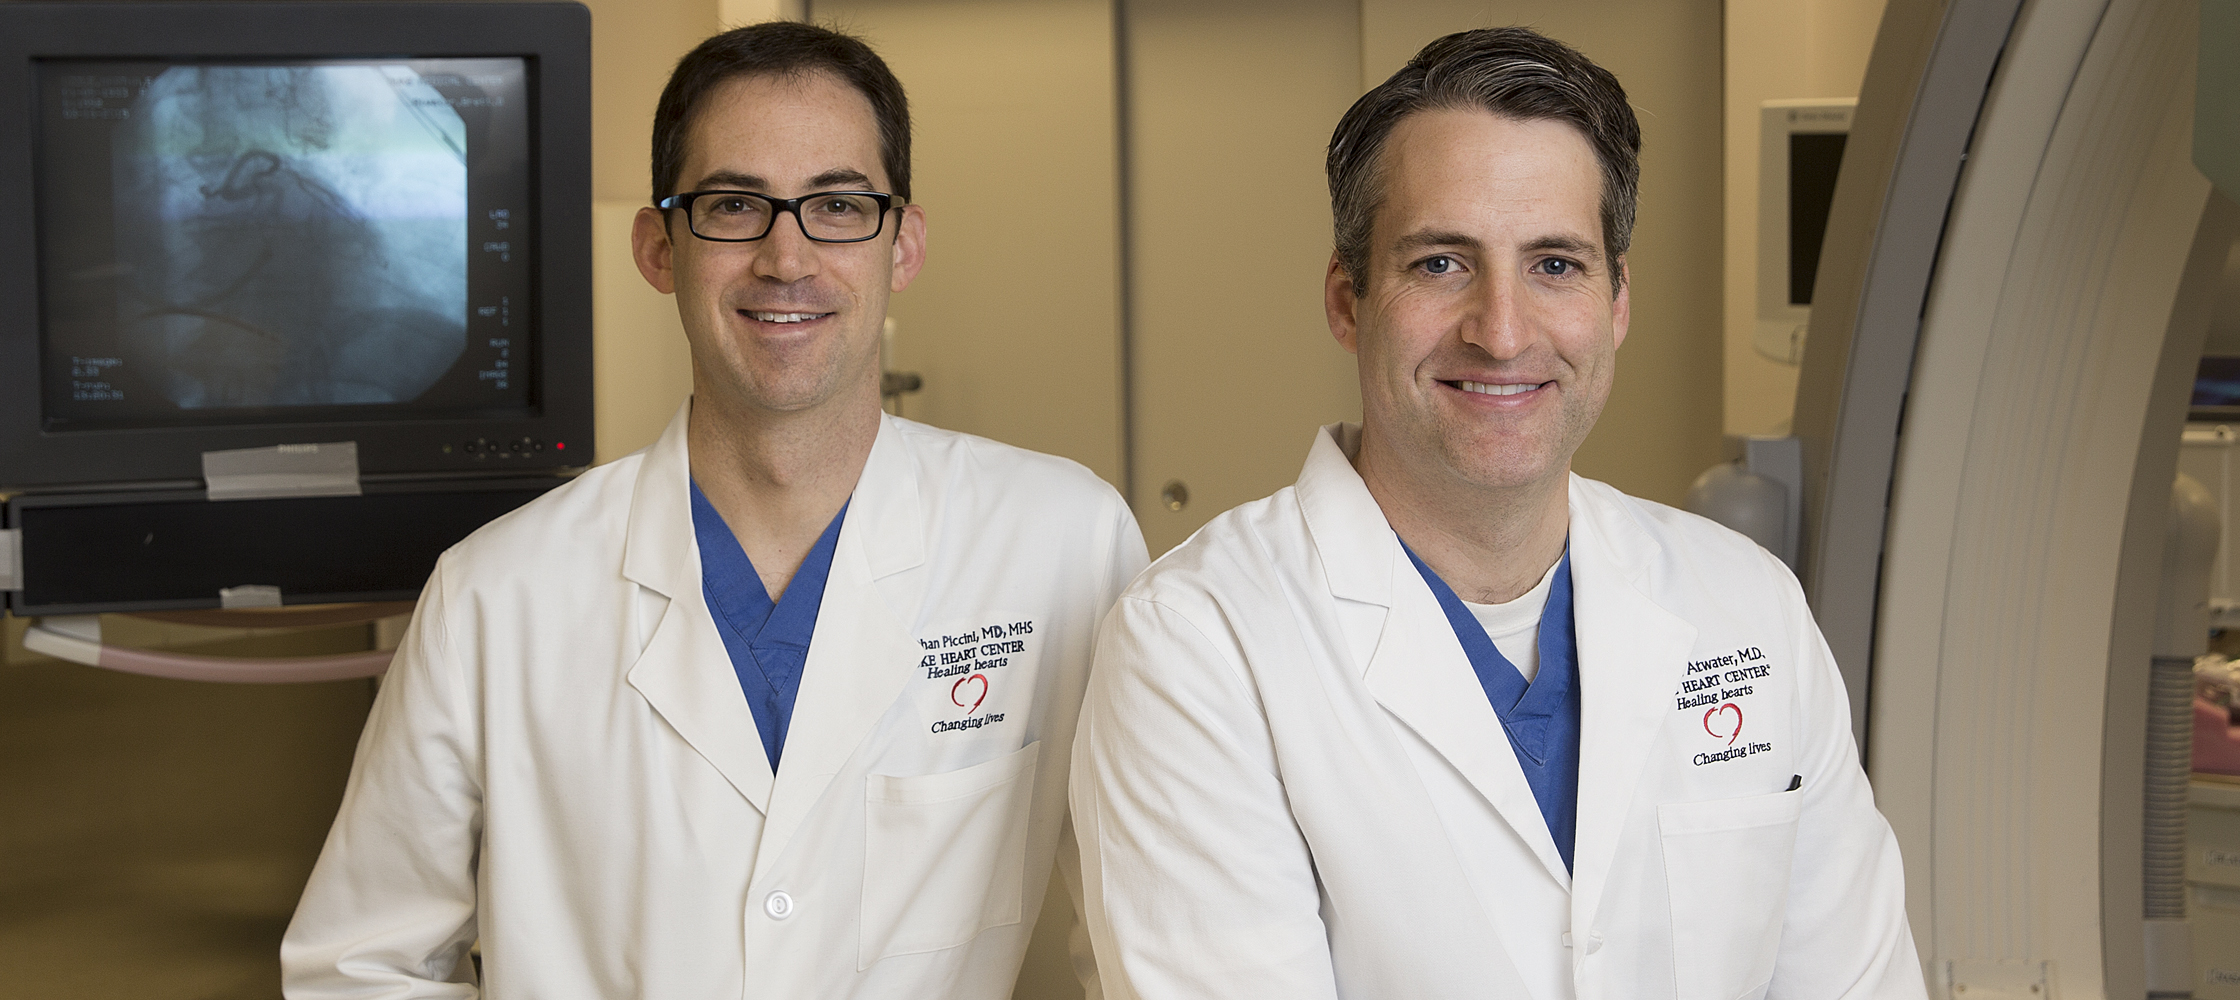 Duke electrophysiologists Jonathan Piccini, MD, and Brett Atwater, MD